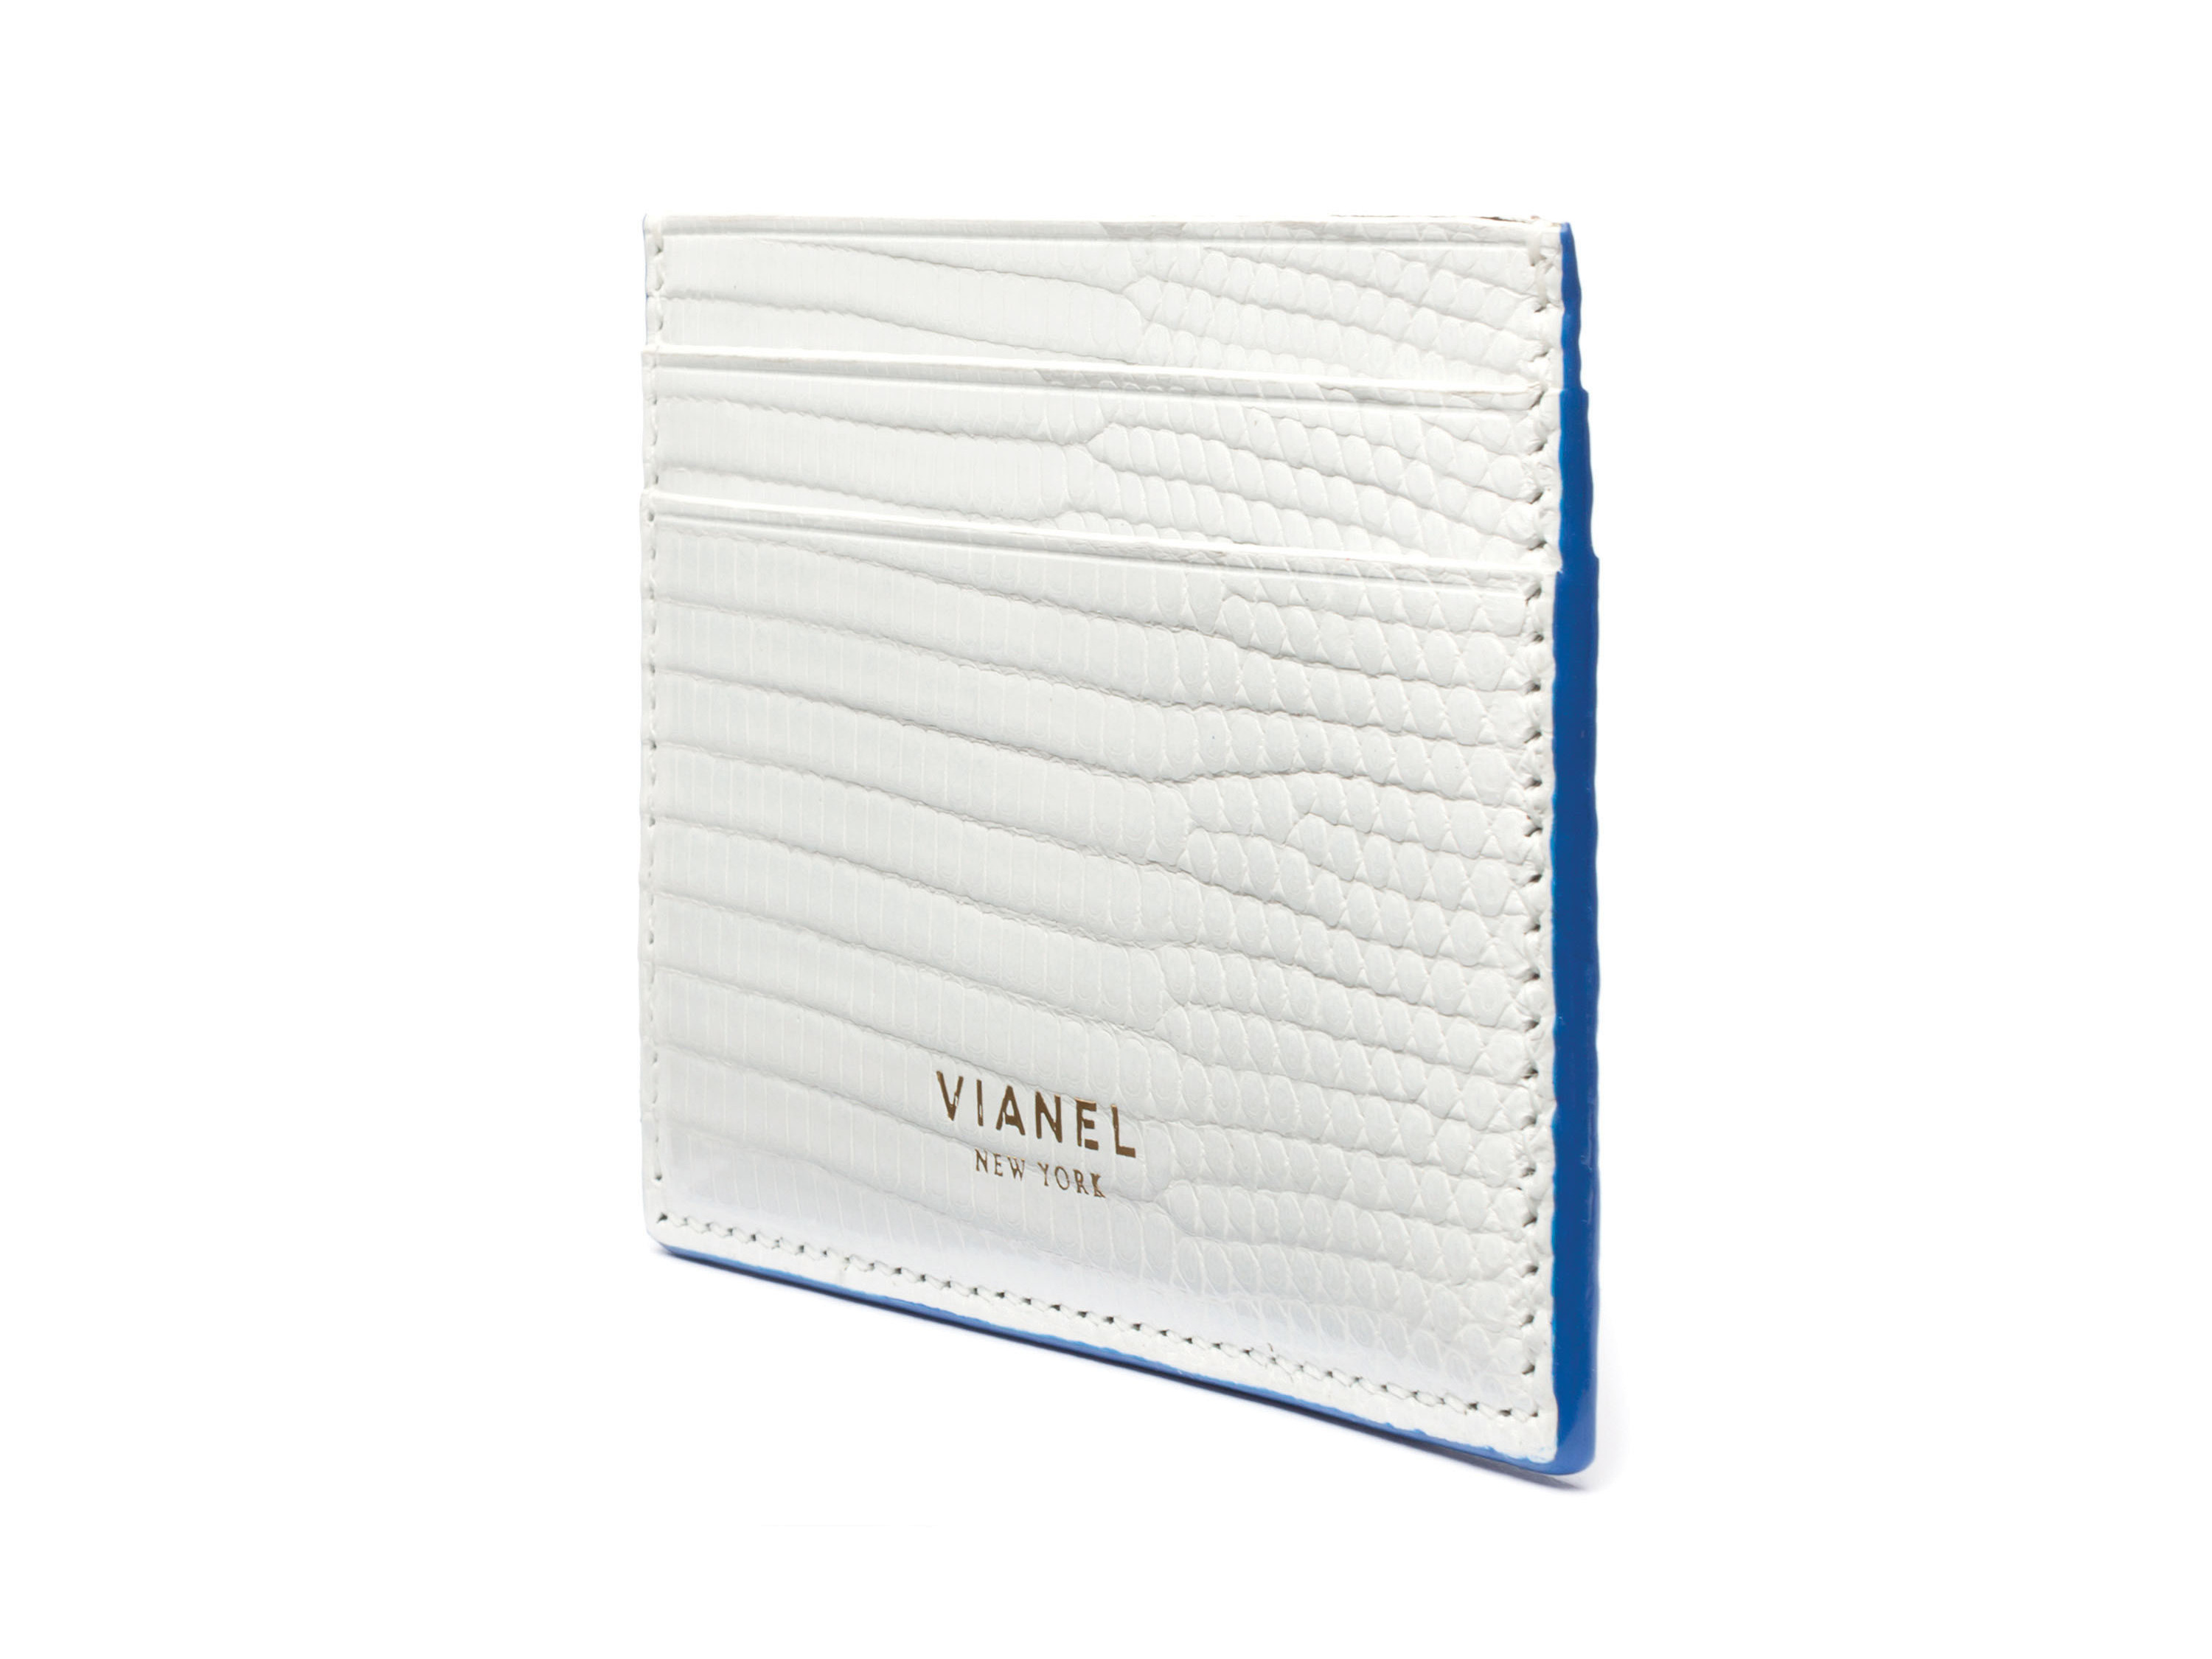 VIANEL Launch Collection Campaign 2013 12